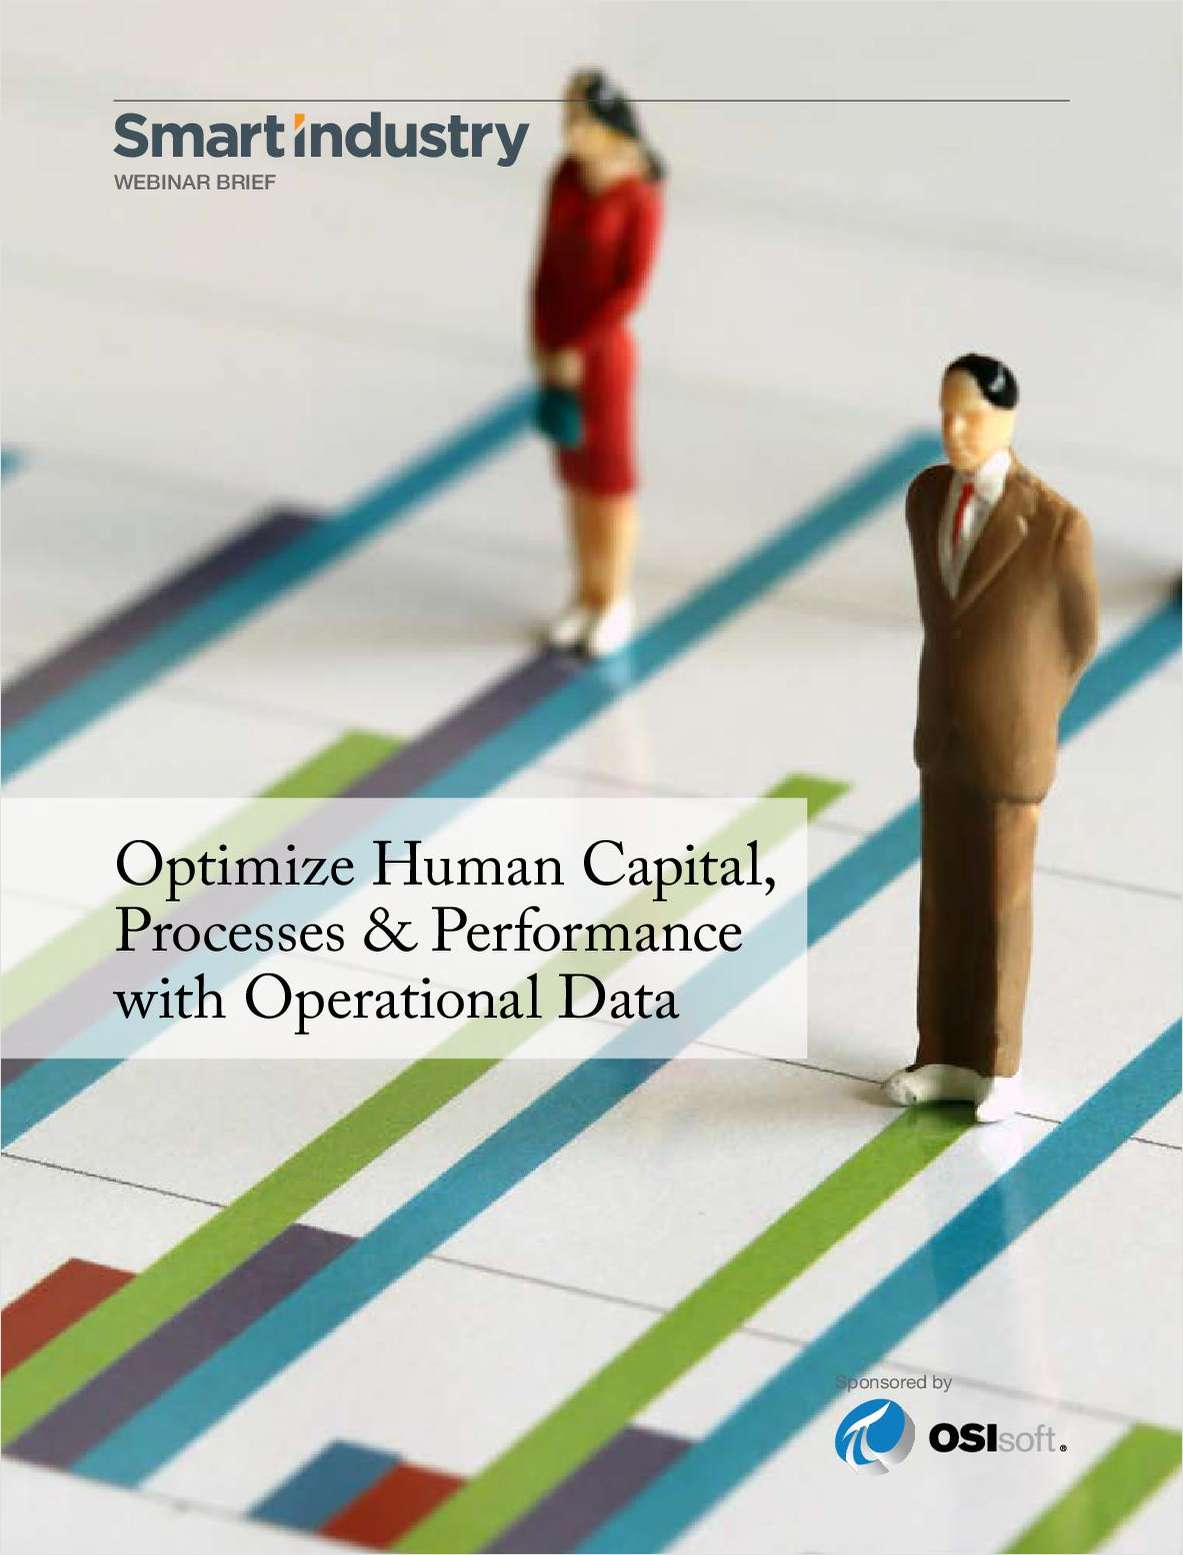 Optimize Human Capital, Processes & Performance with Operational Data